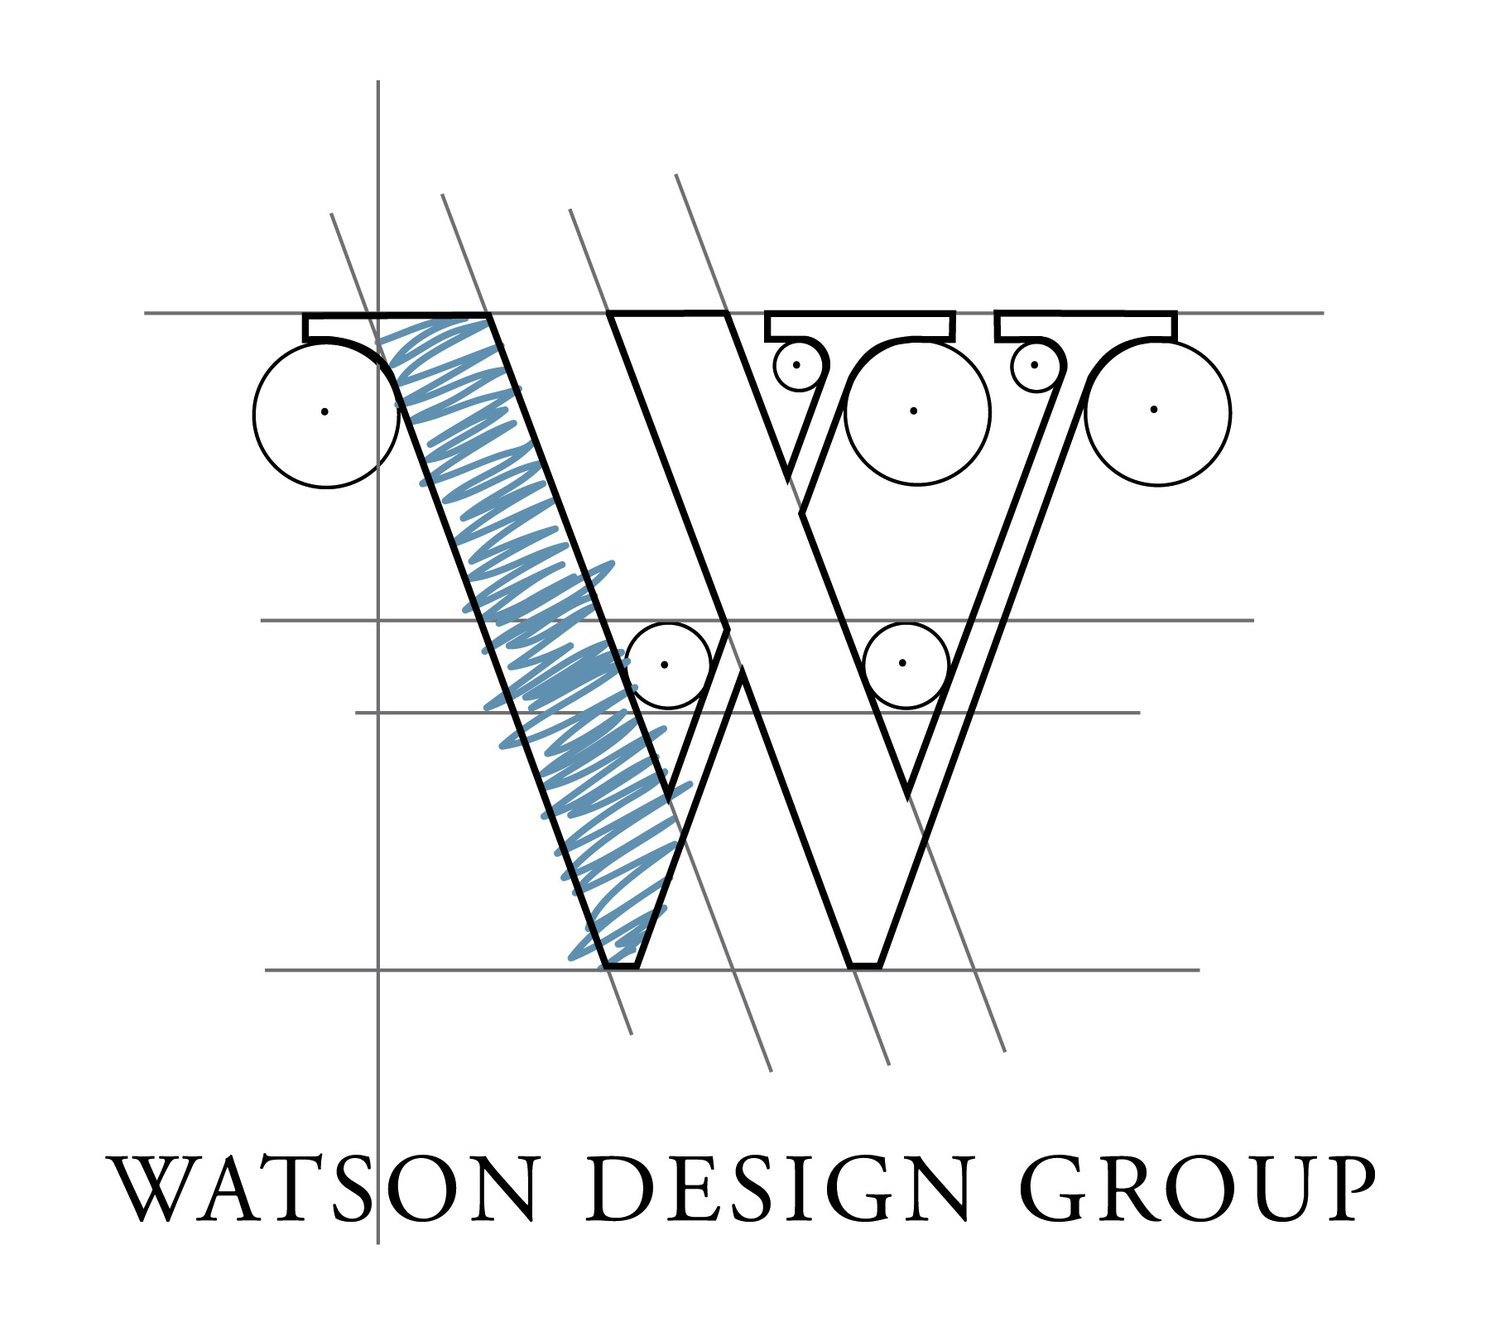 WatsonDesignGroup